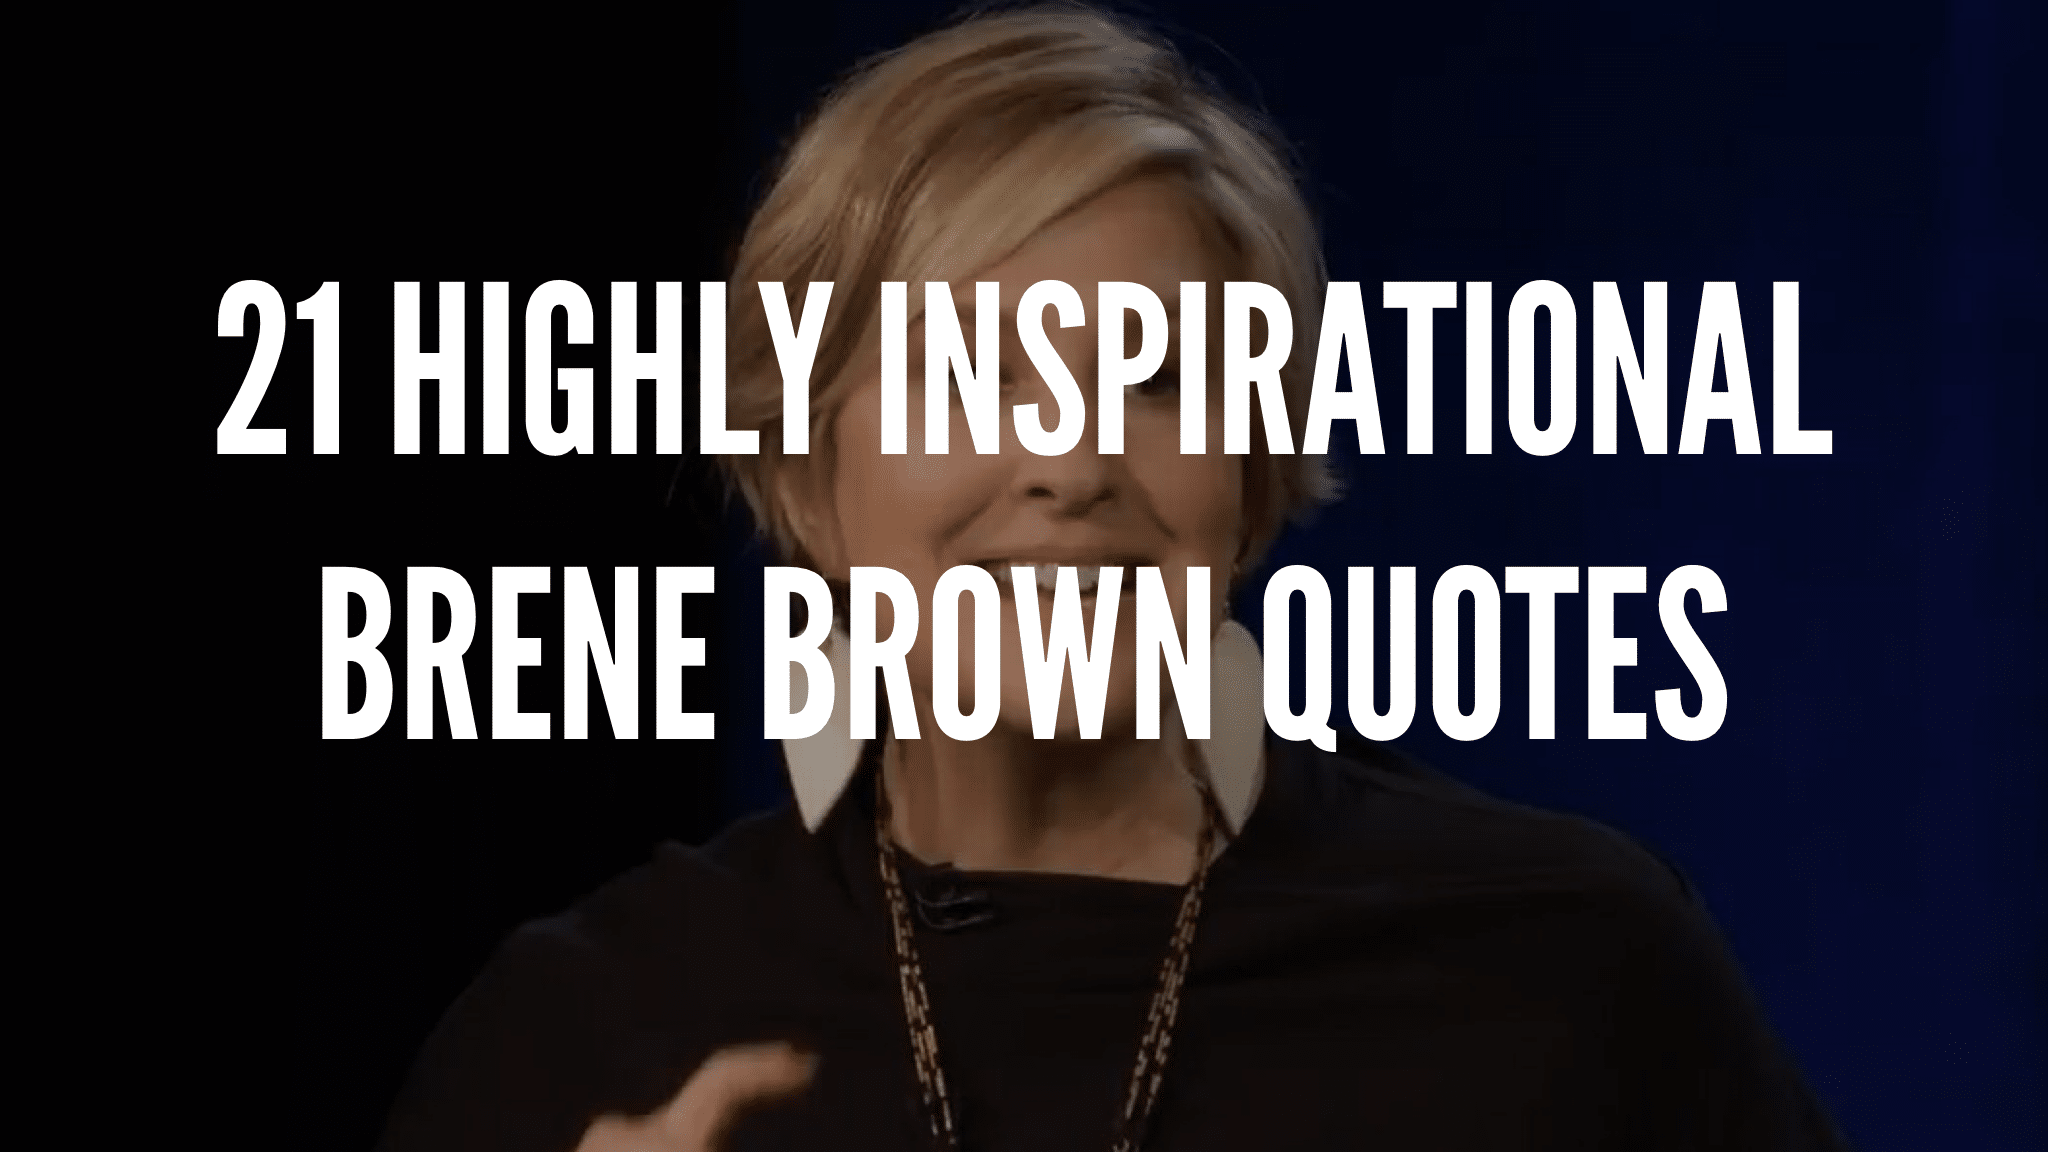 21 Highly Inspirational Brené Brown Quotes